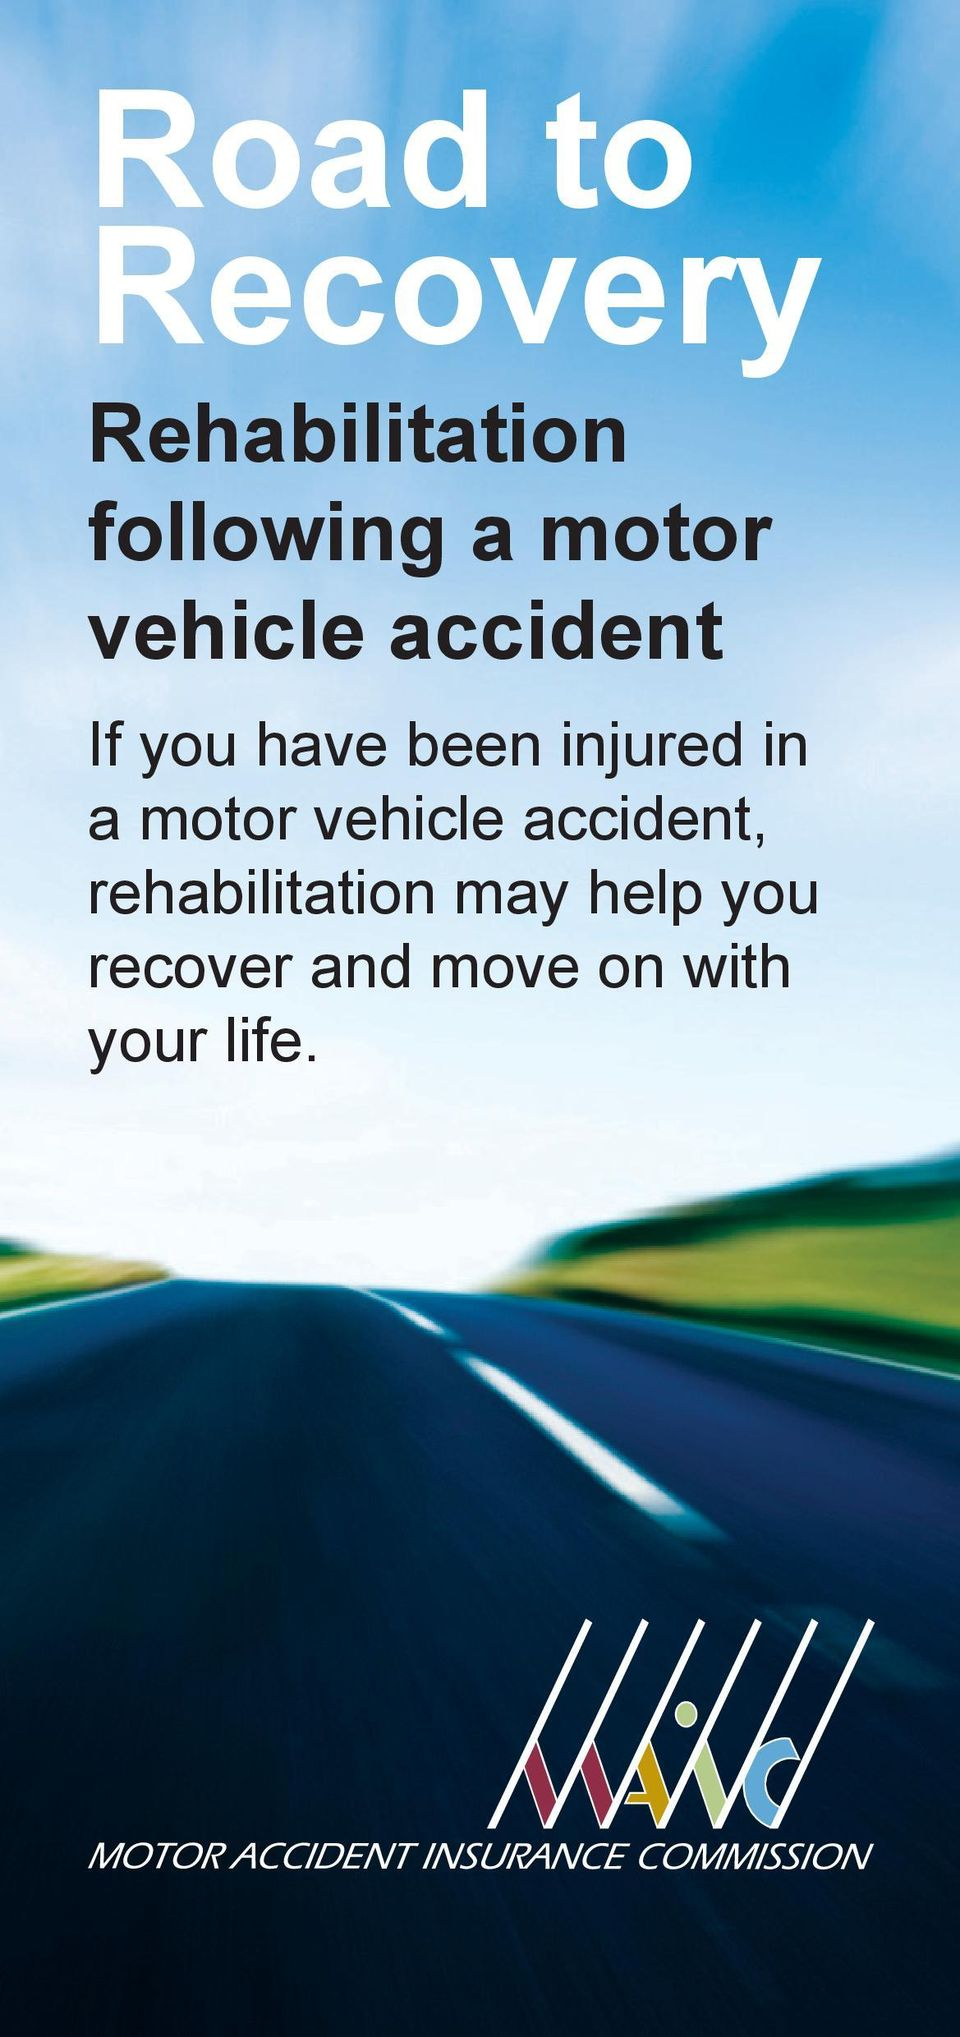 injured in a motor vehicle accident,